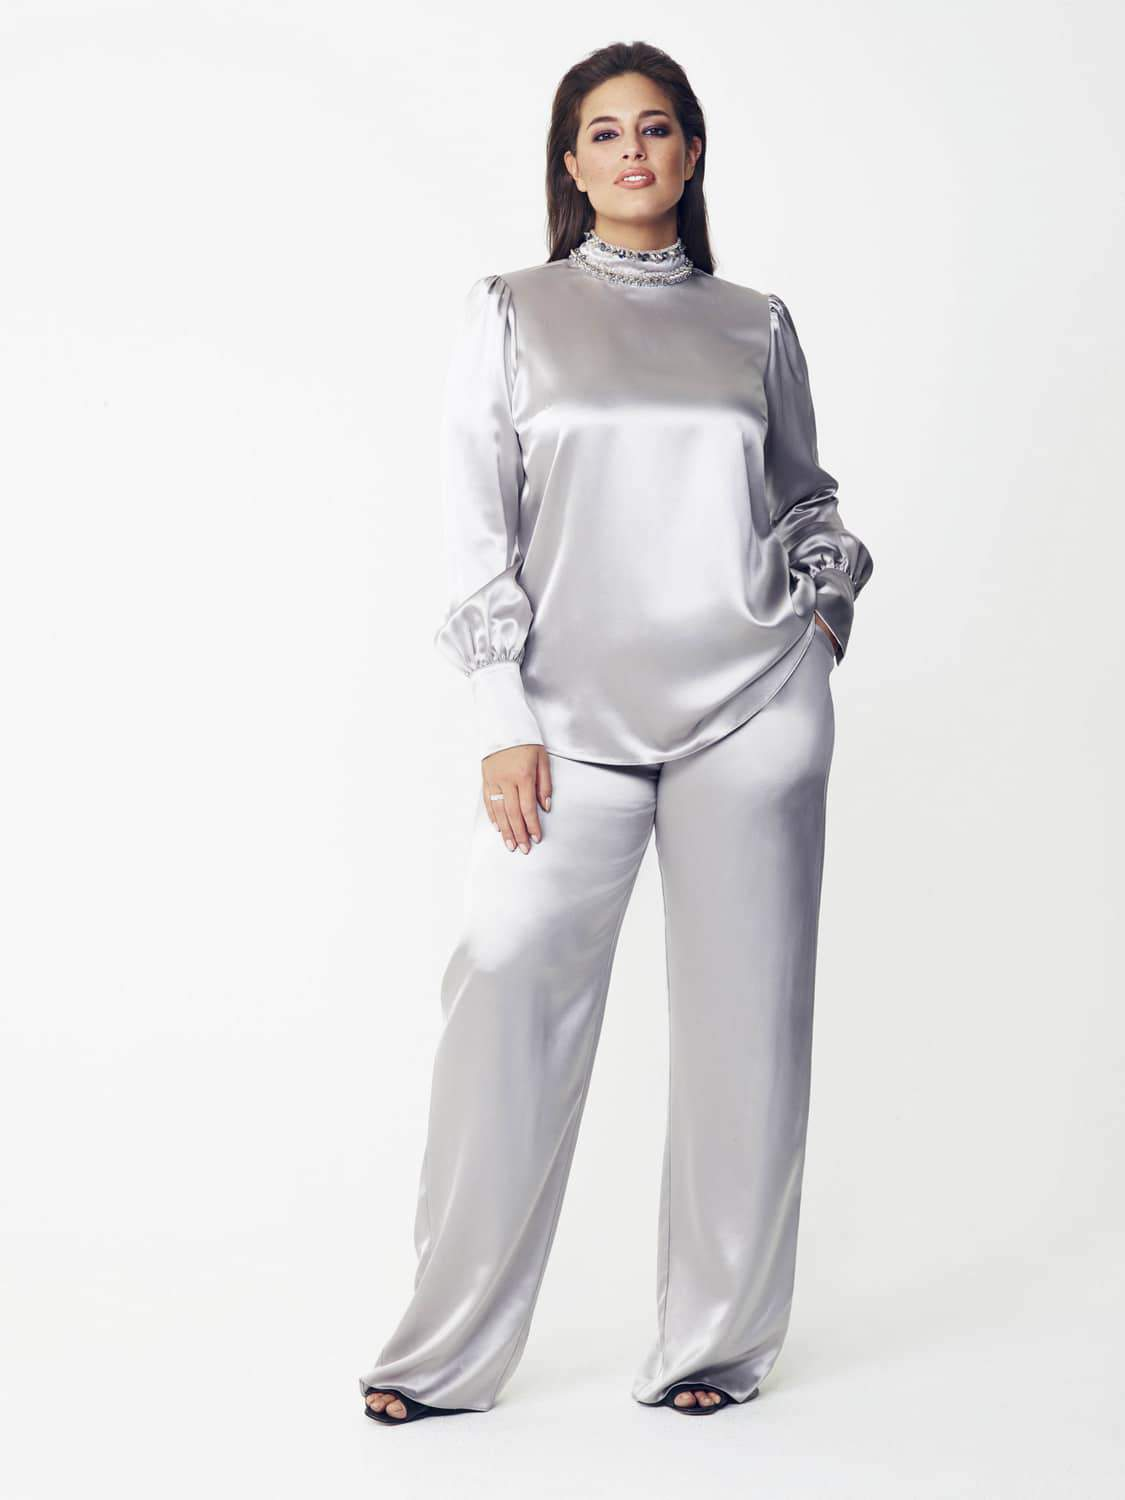 Giles Deacon Top and Pant by Evans on TheCurvyFashionista.com